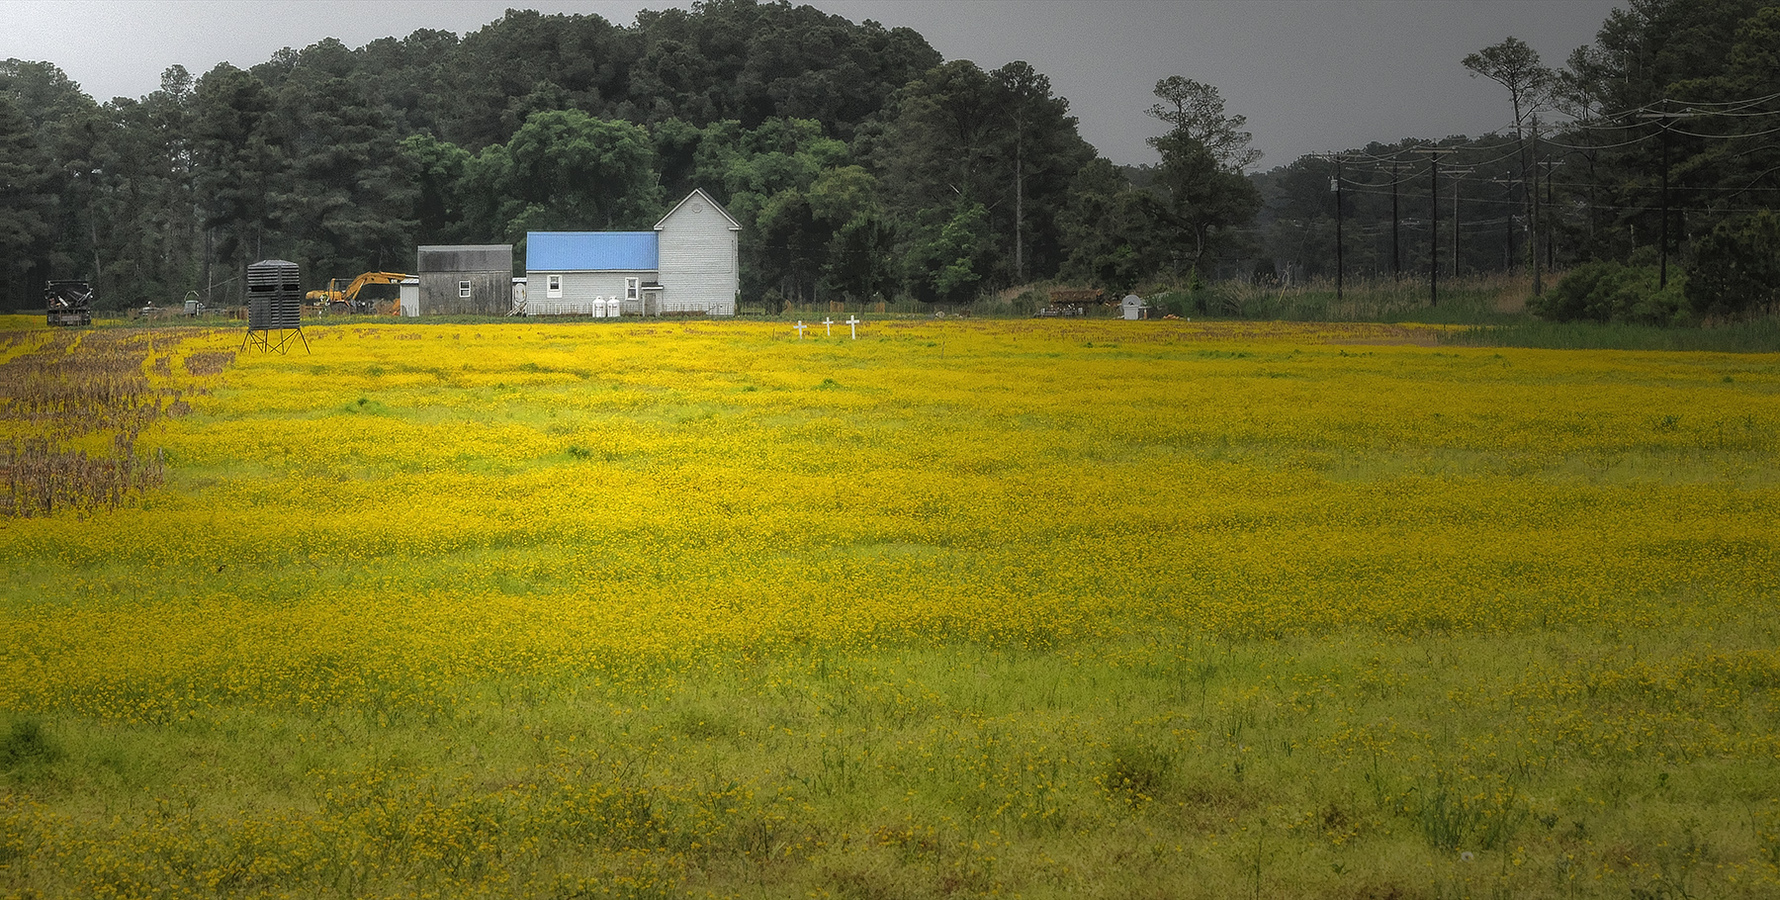 Landscapes Gallery Gold Field, Crosses, and Blue Roof  ©